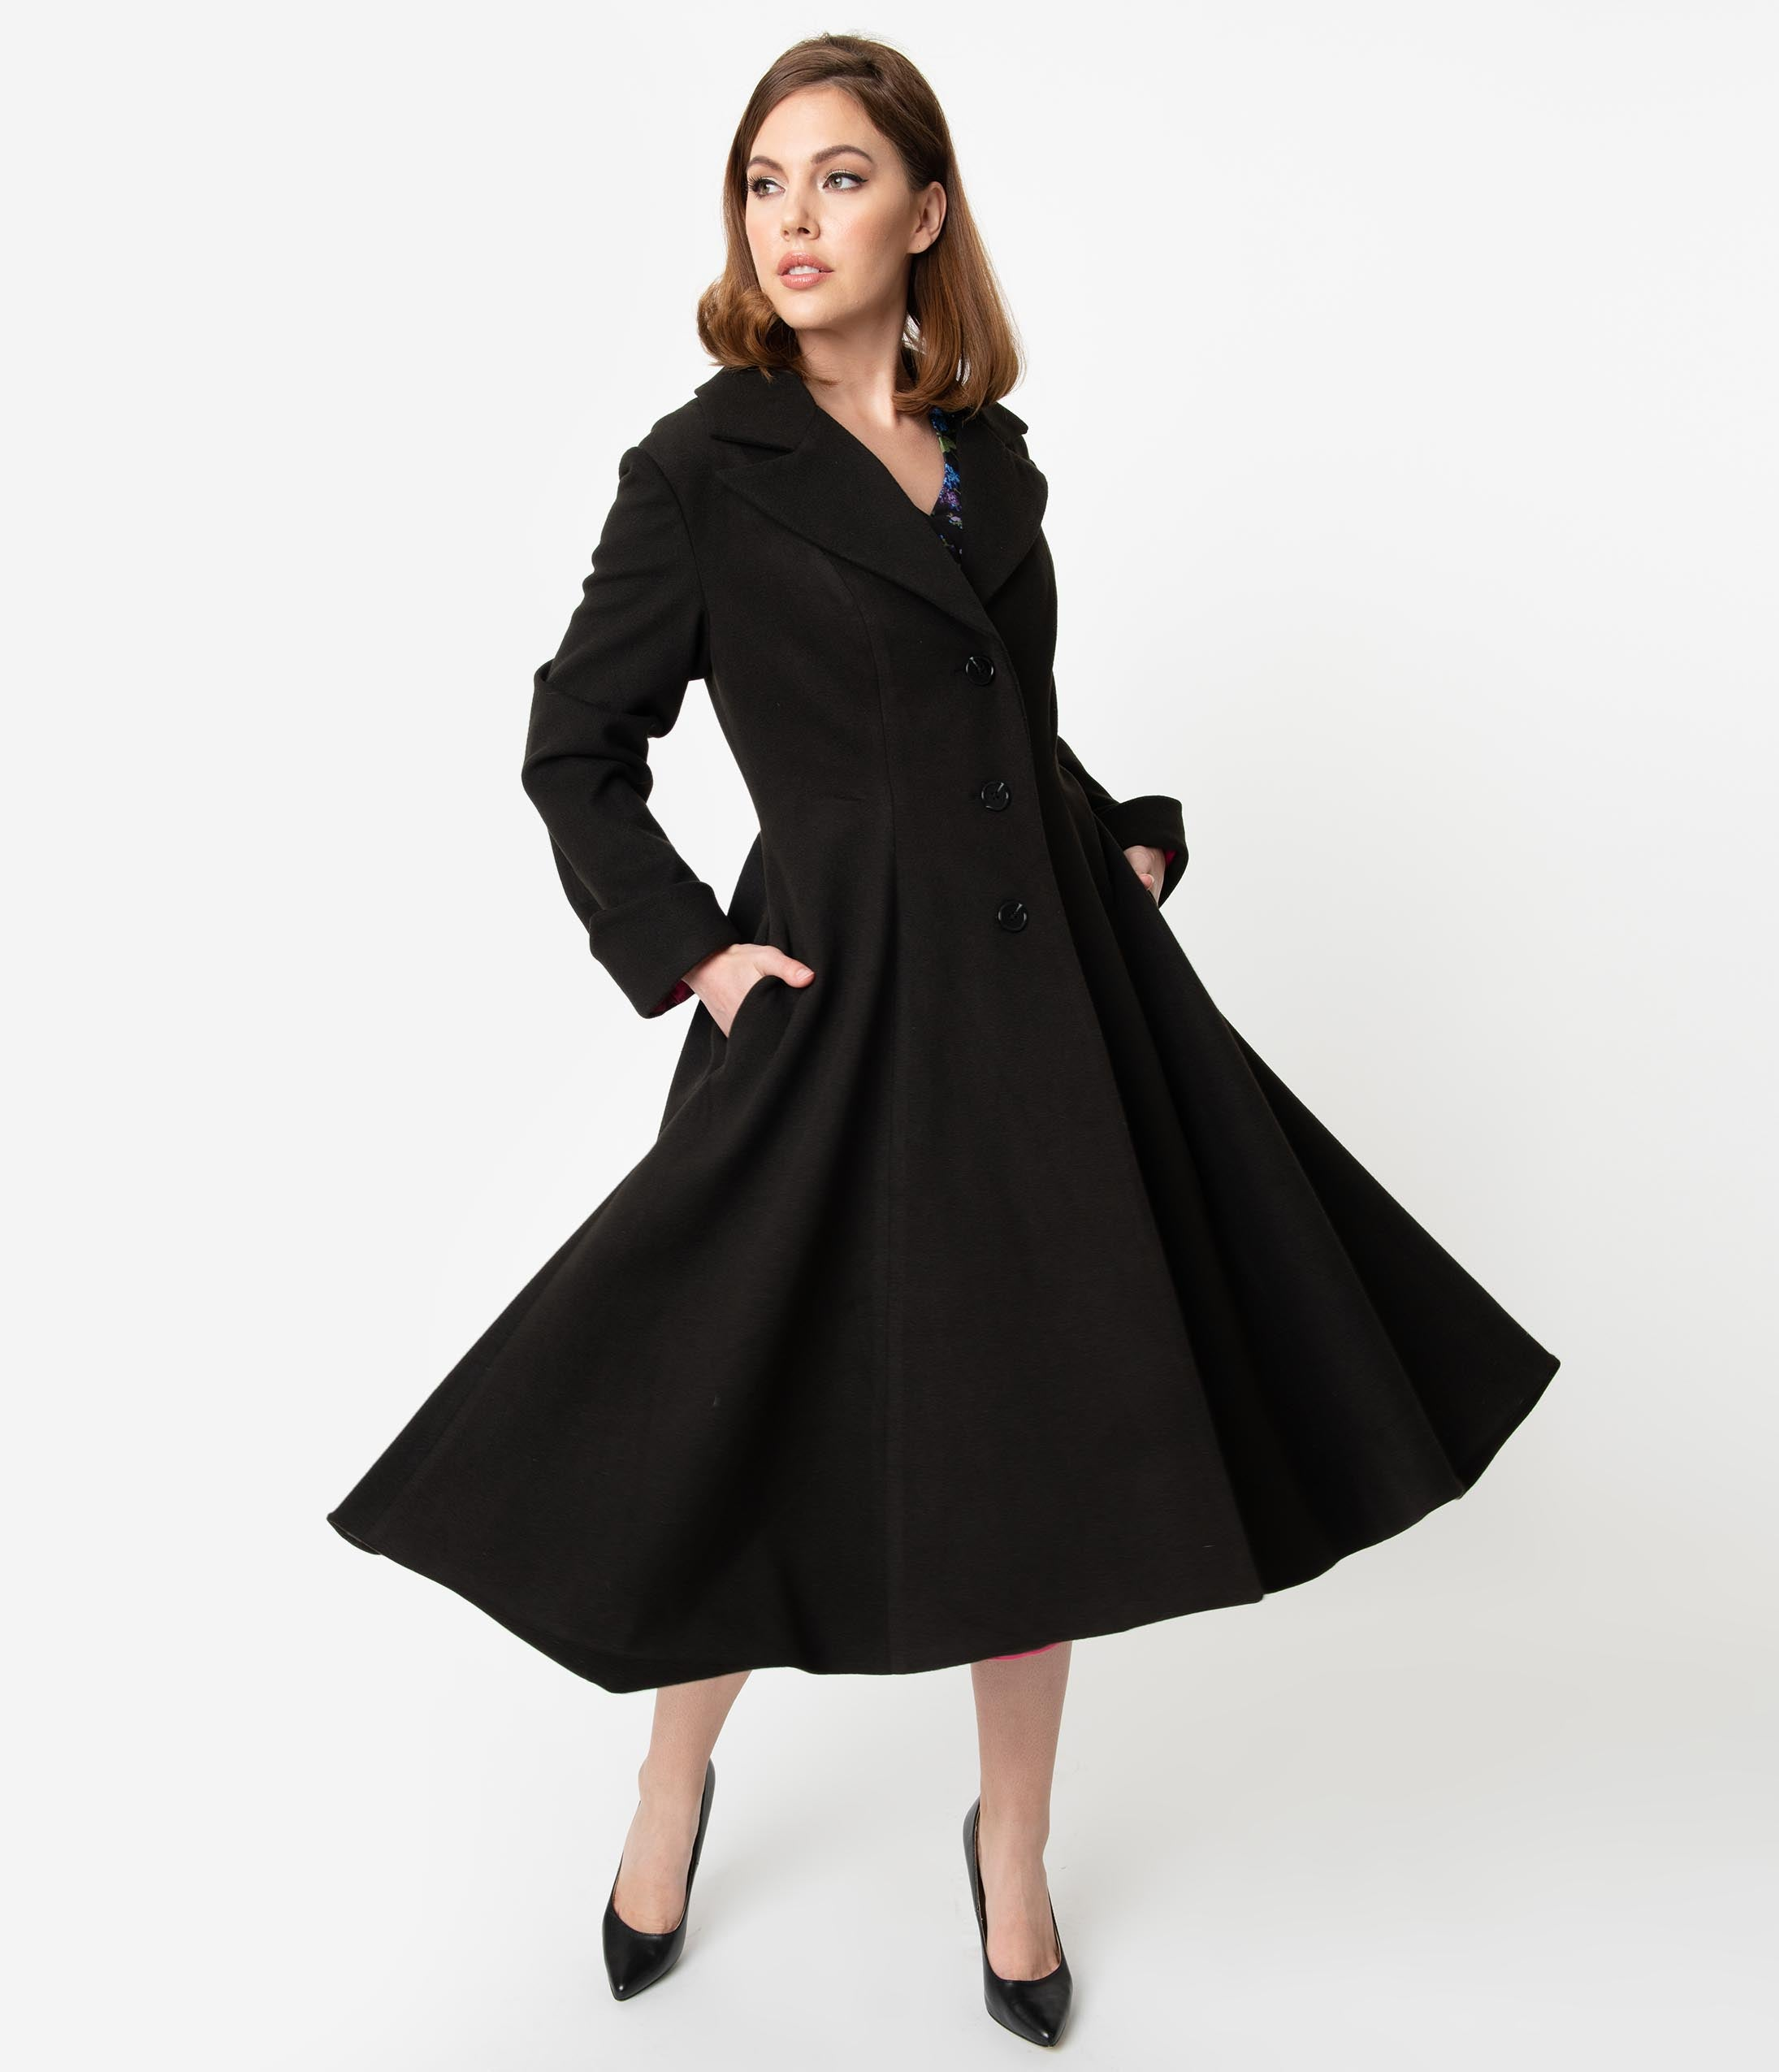 Vintage Coats & Jackets | Retro Coats and Jackets Micheline Pitt For Unique Vintage 1950S Style Black Neo-Noir Swing Coat $228.00 AT vintagedancer.com